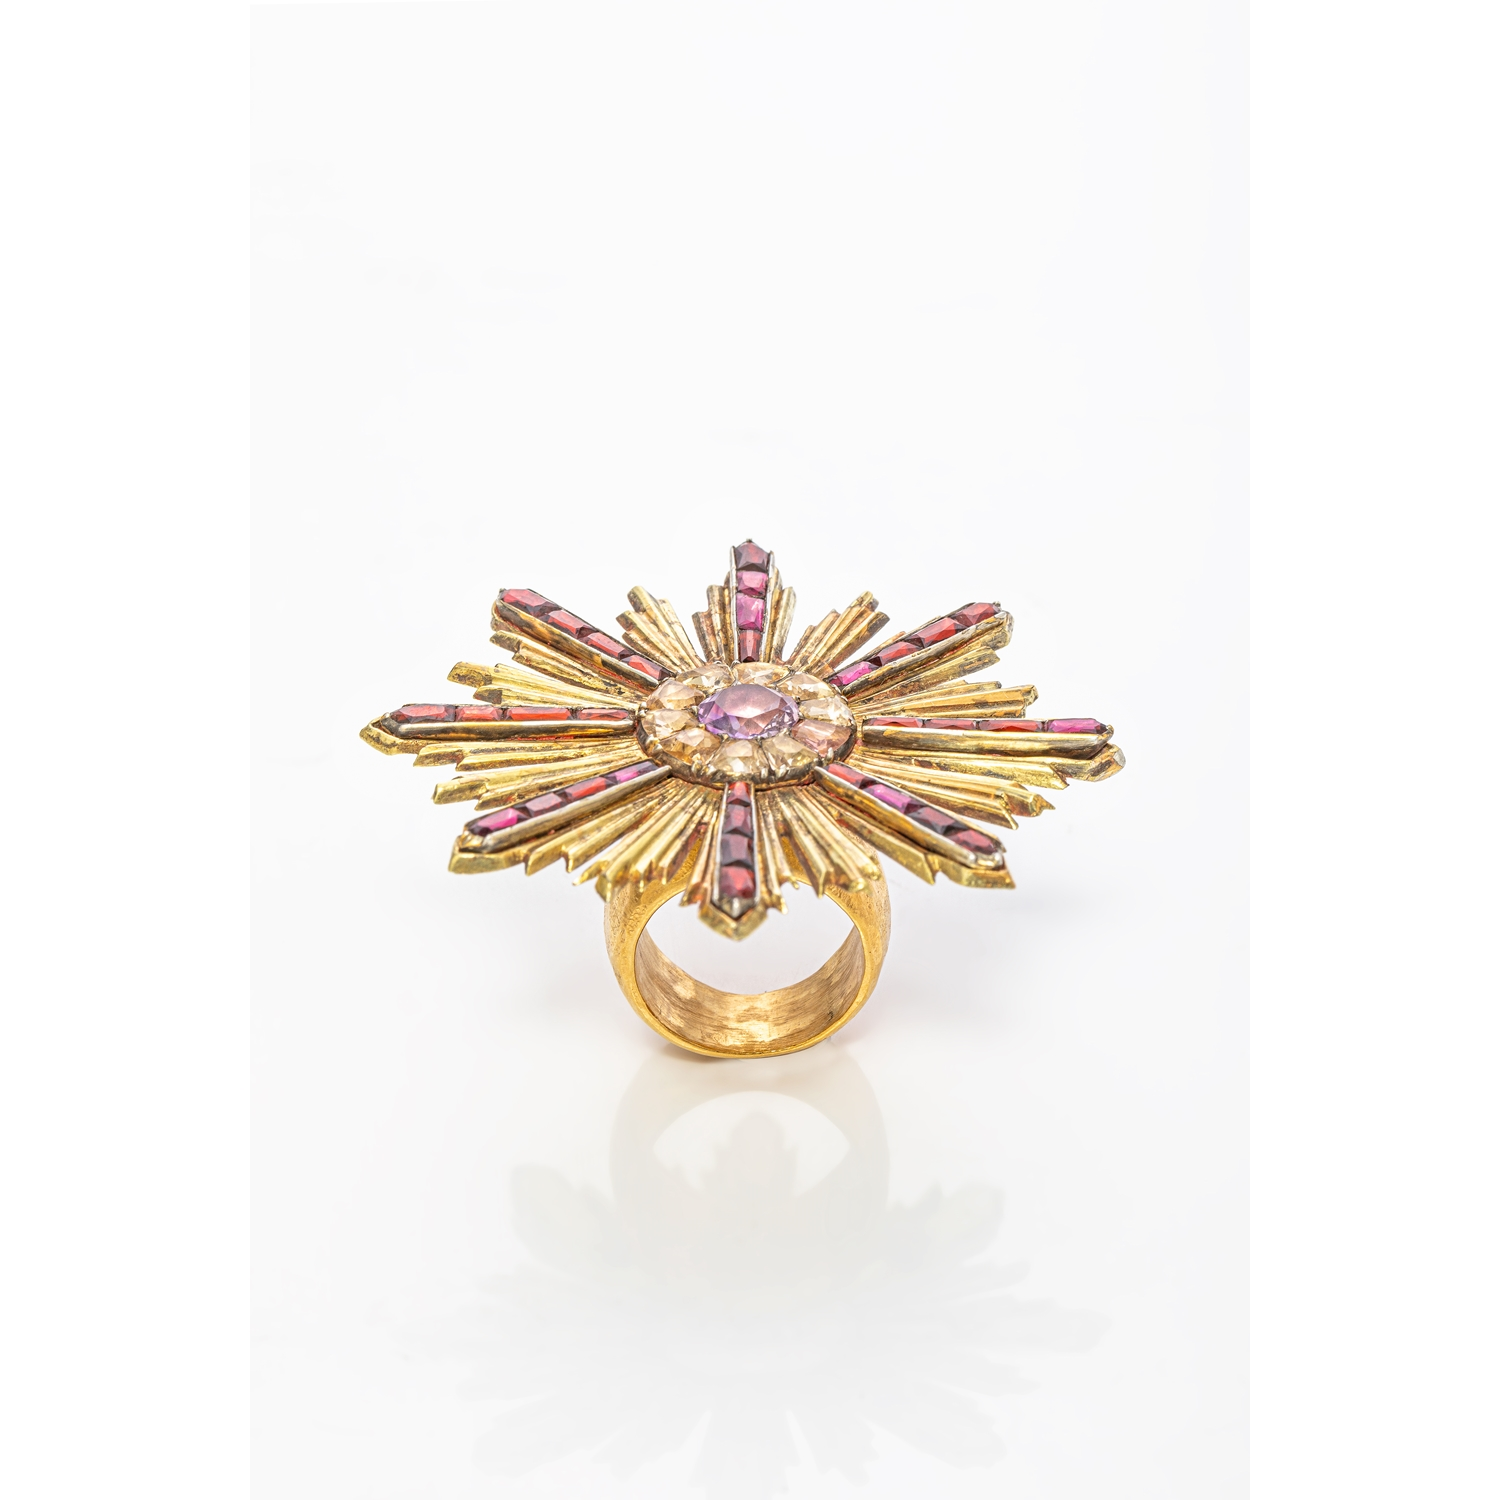 UNIQUE RING WITH A SUMPTUOUS BAROQUE BROOCHE